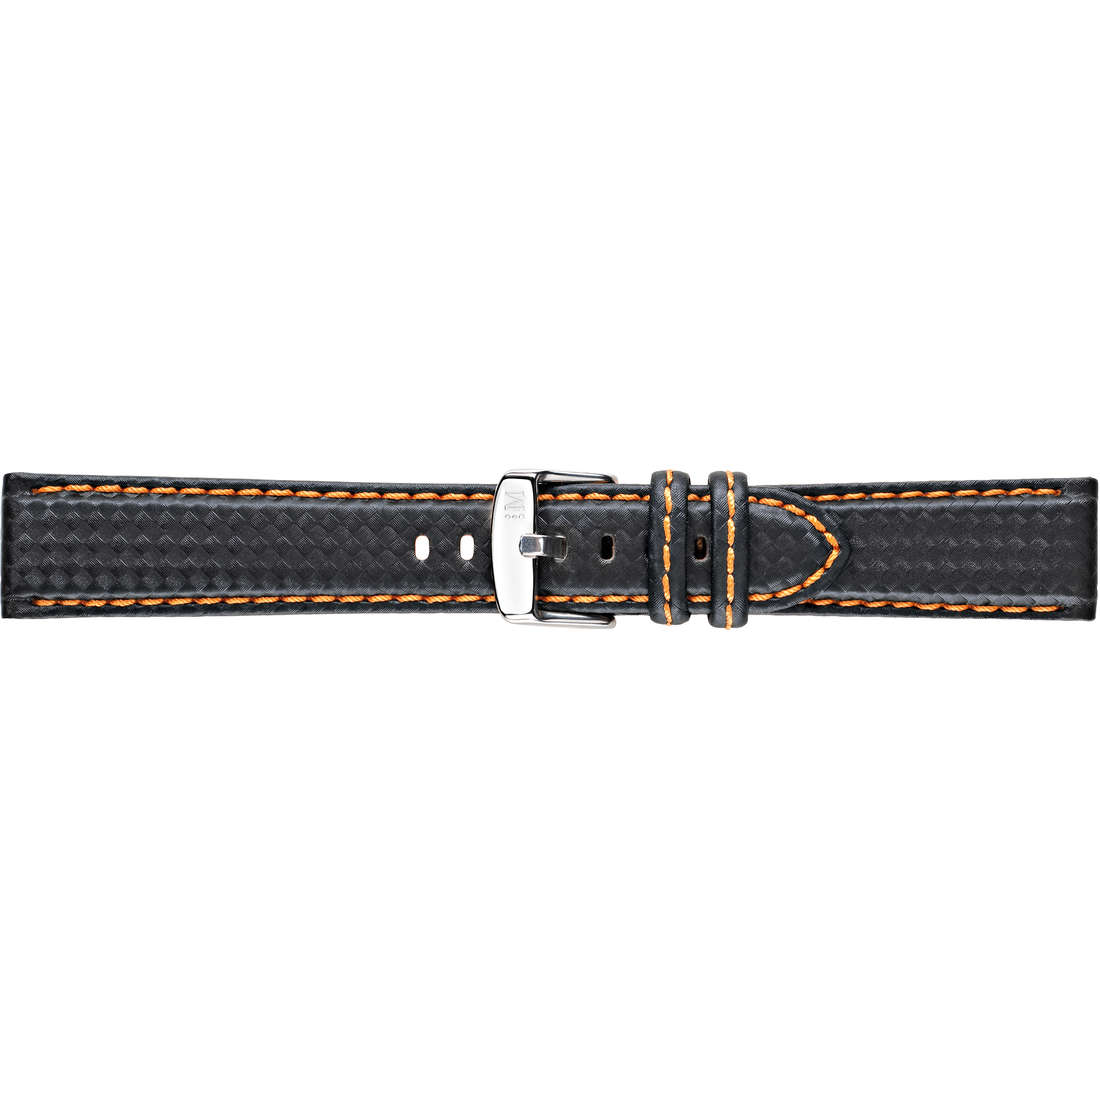 watch watch bands watch straps man Morellato Linea Sport A01U3586977886CR22